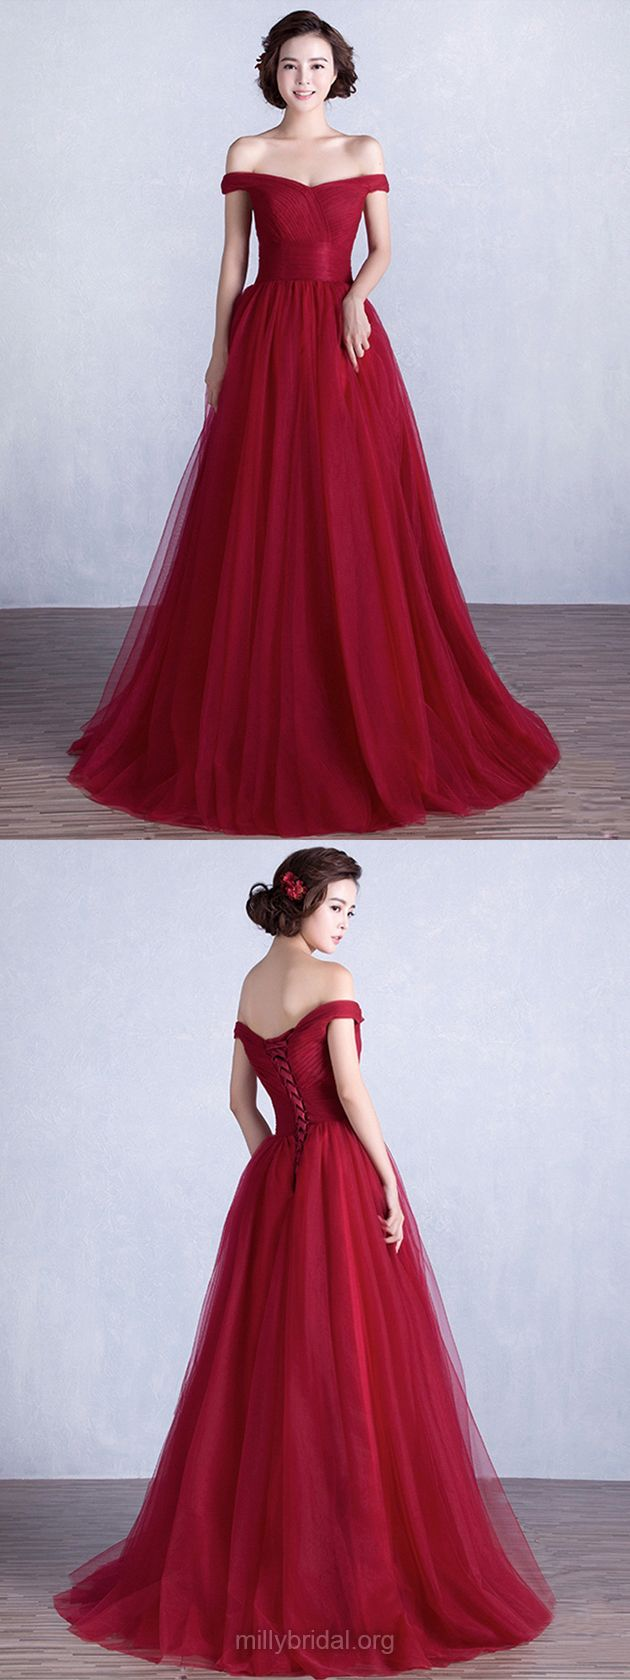 Burgundy prom dresses long prom dresses princess offthe